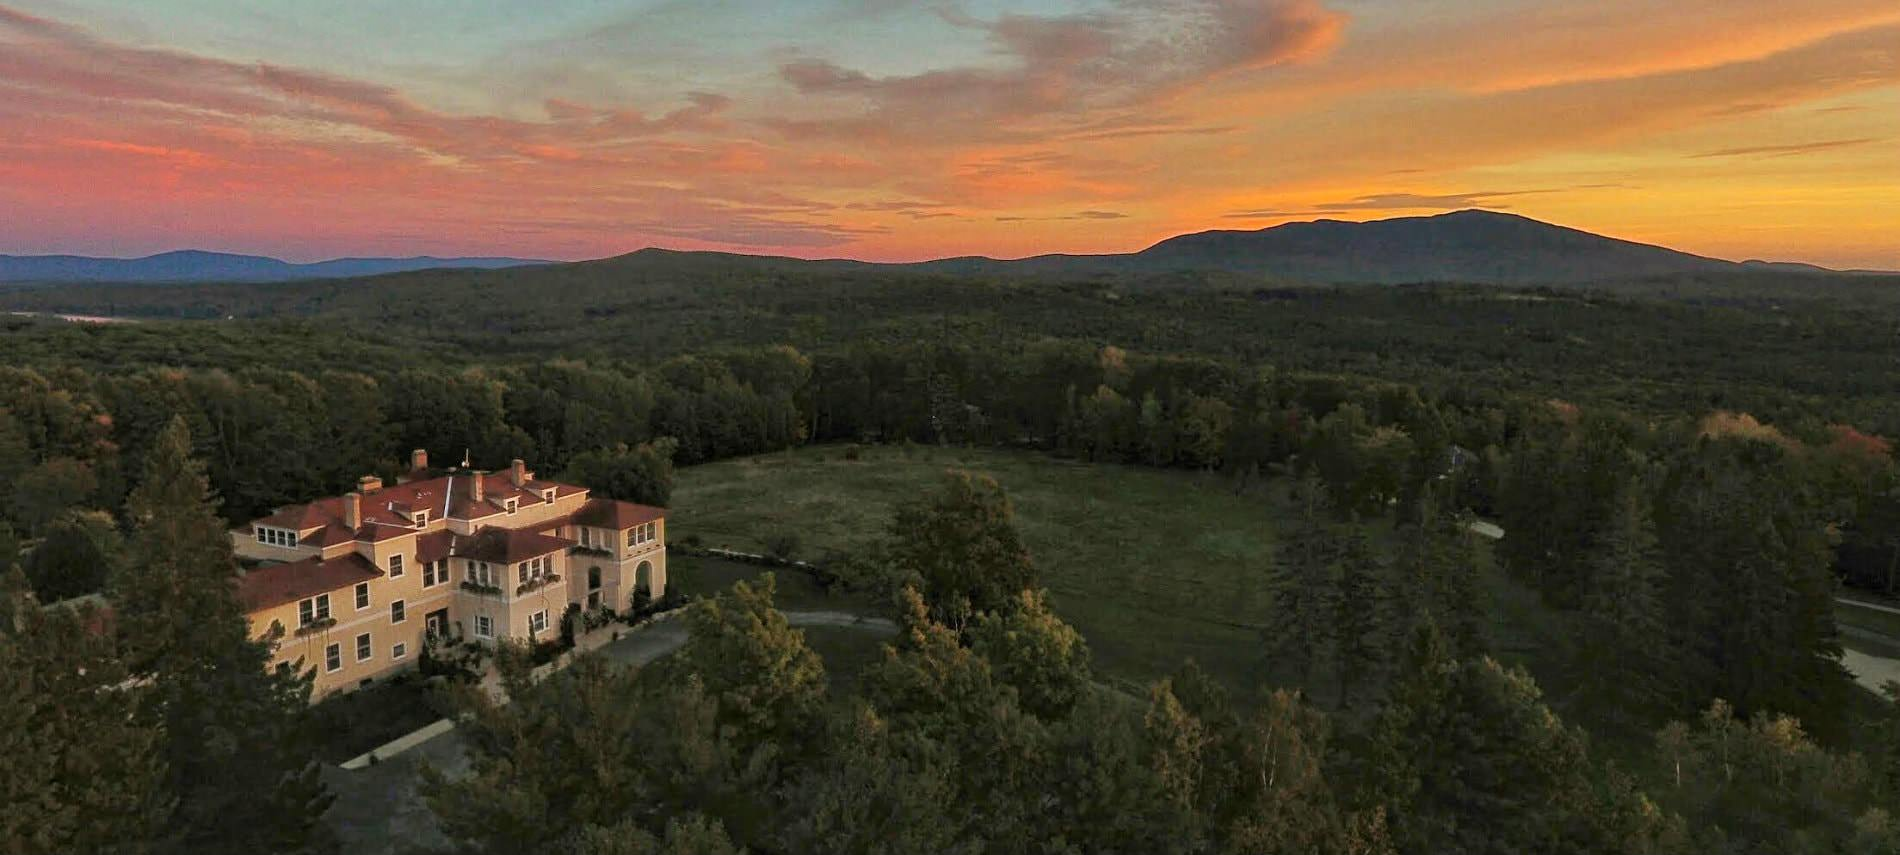 Stunning aerial view of large tan manor house surrounded by lush green lawn, miles of trees, and sun setting over Mount Monadnock